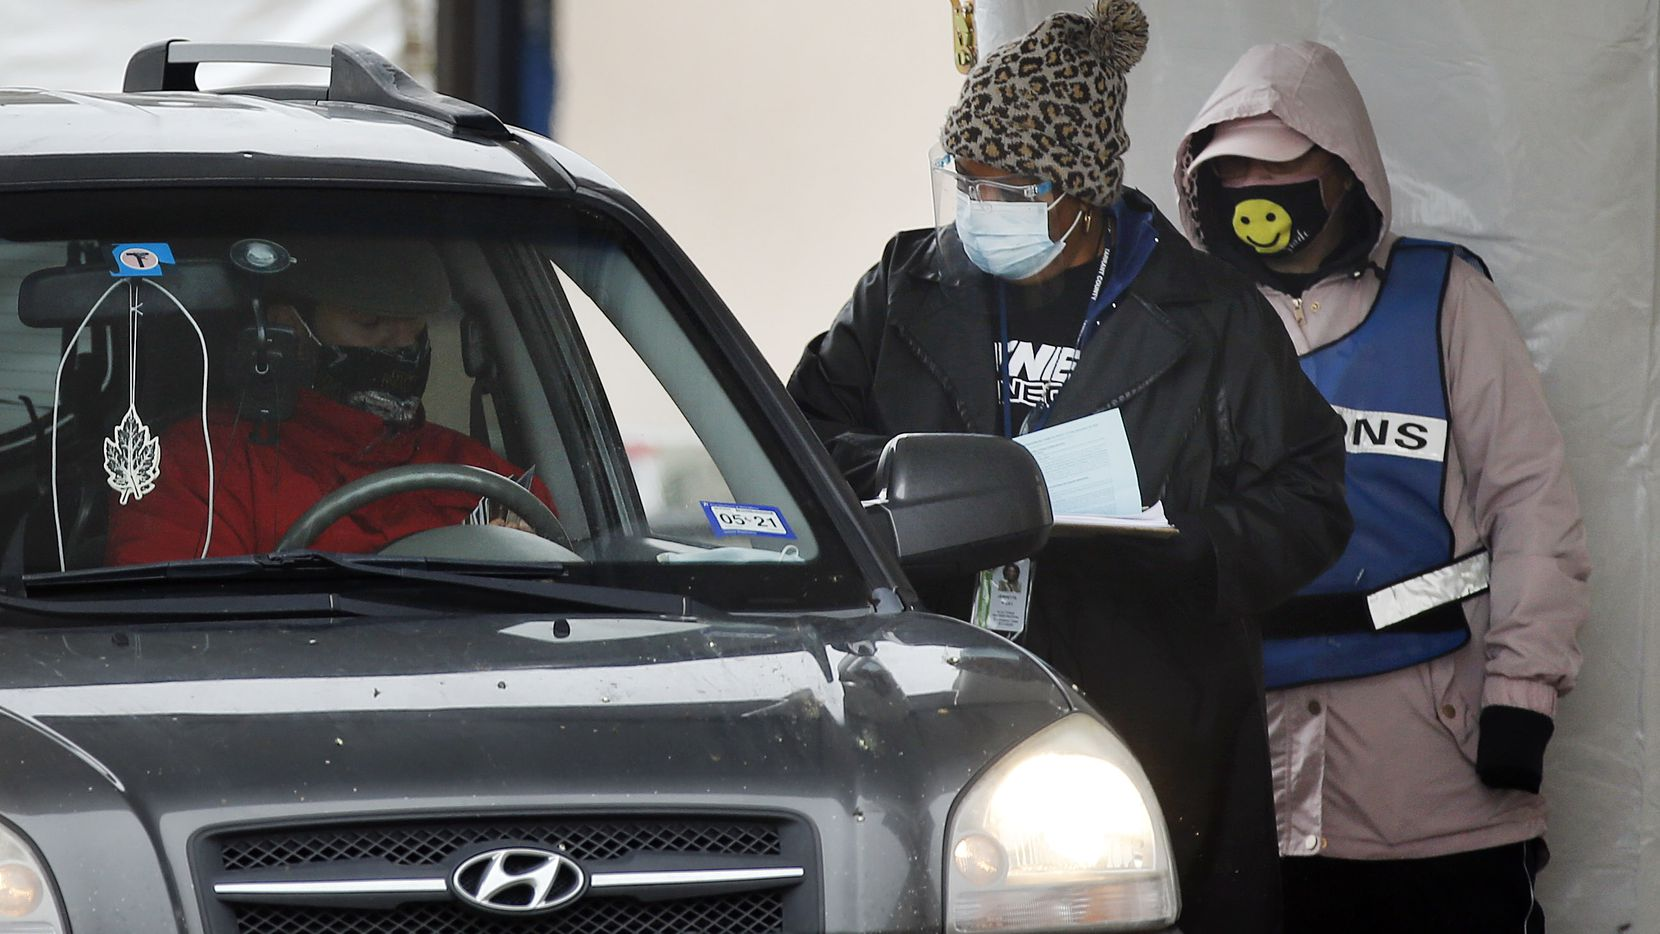 Ulysses Rusher (in vehicle) attempts to drop off his mothers early voting ballot at the Tarrant County Elections Center in Fort Worth, Tuesday, October 27, 2020. Officials wouldn't let him do it without his mother present. He said he will try to bring her with him on Wednesday. (Tom Fox/The Dallas Morning News)